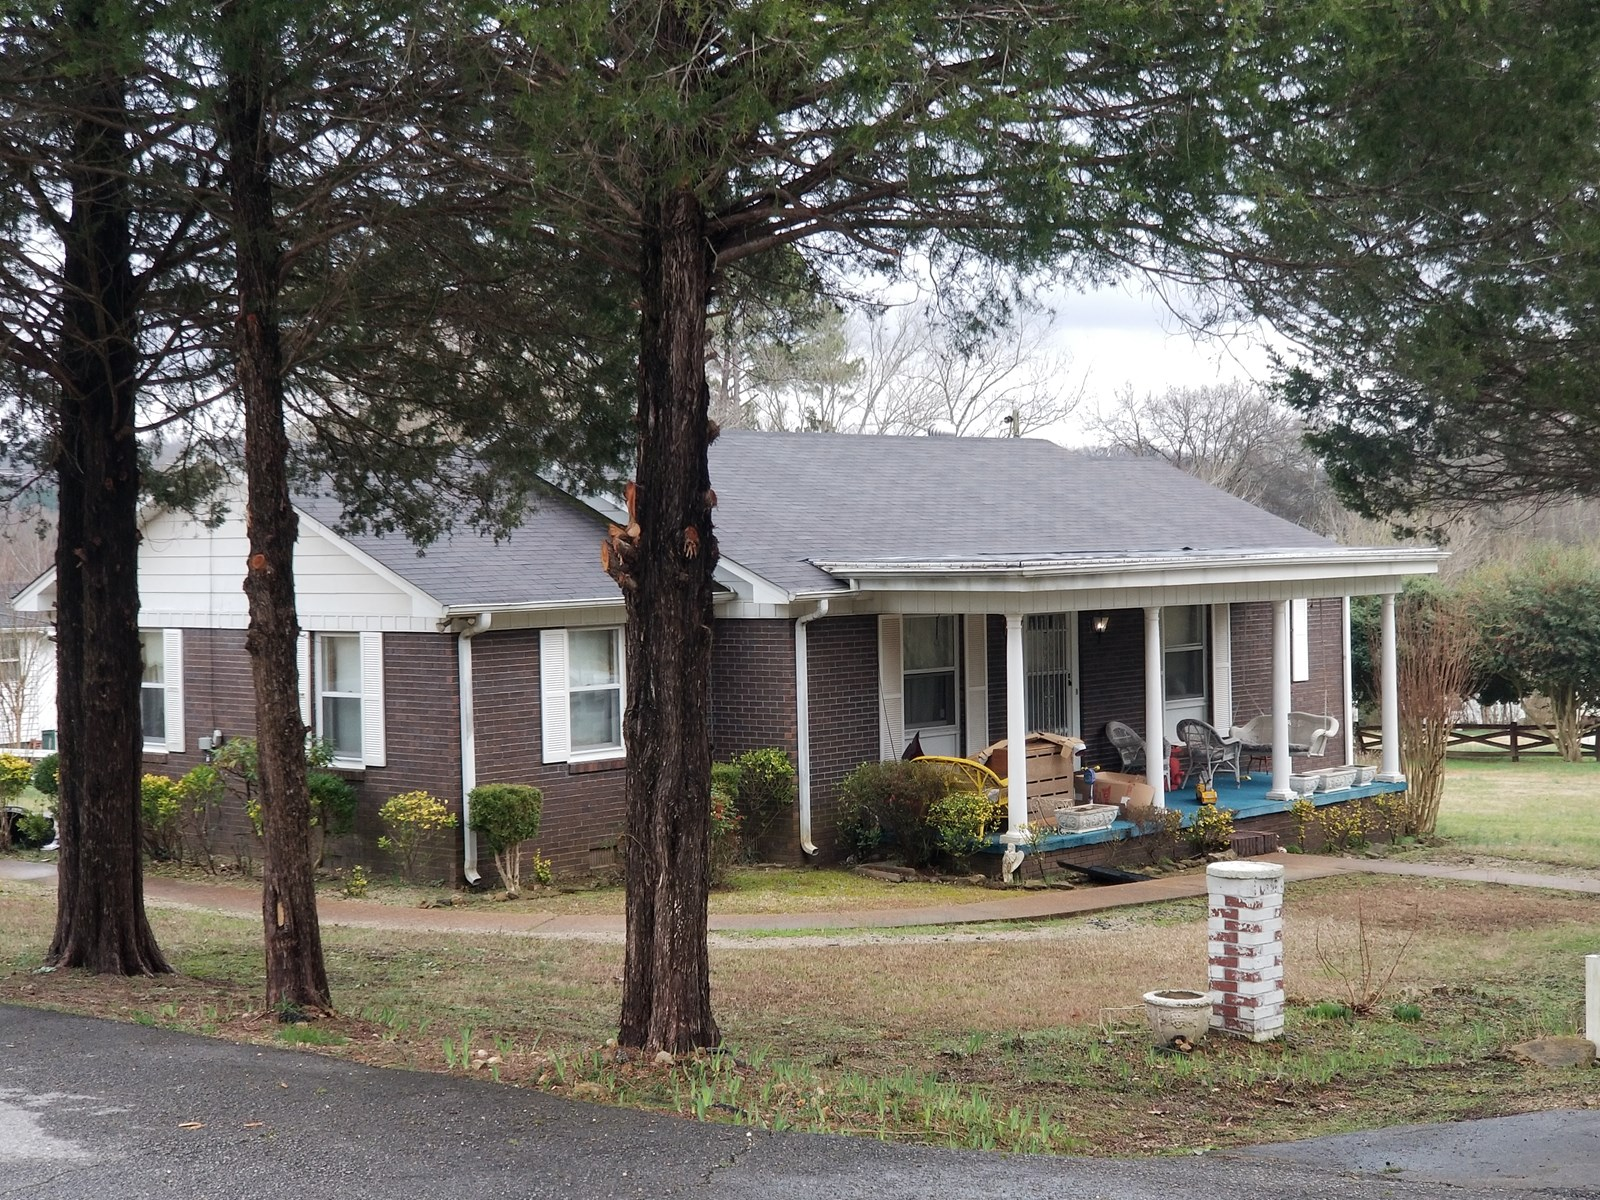 WAYNESBORO TN HOME FOR SALE 3 BEDROOM 1 BATH .5 ACRE CARPORT